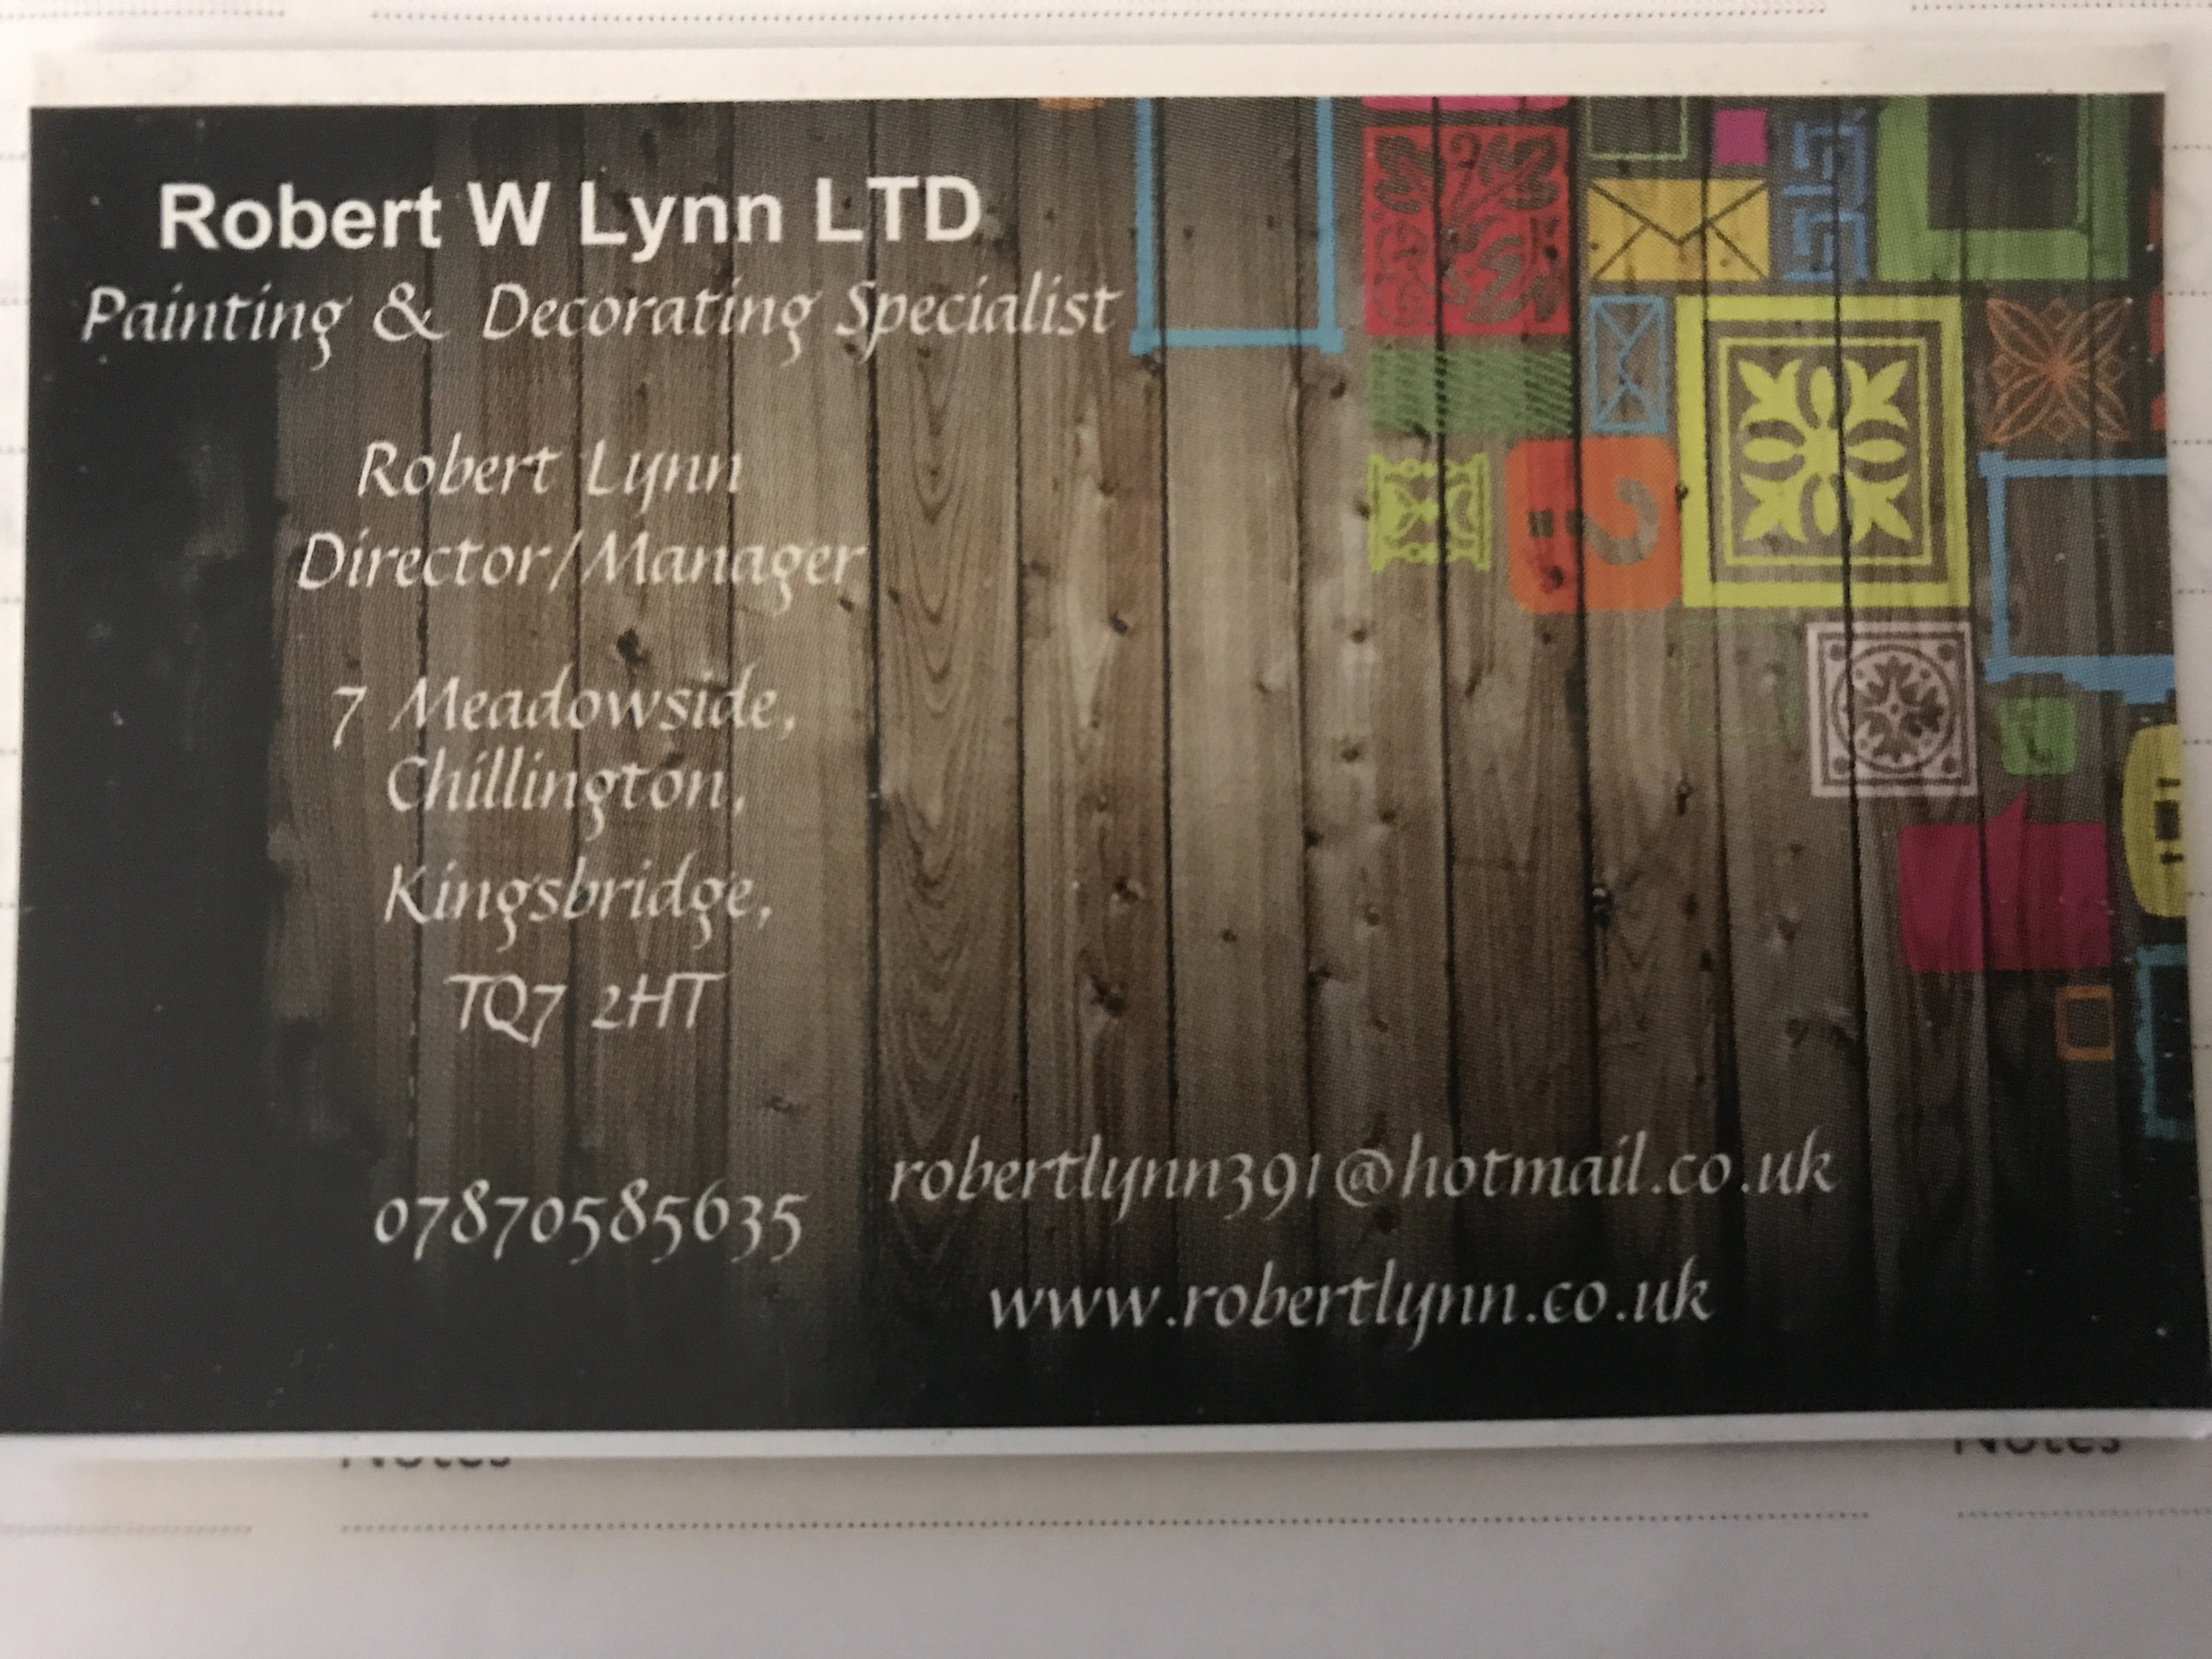 Robert W Lynn Ltd Photo